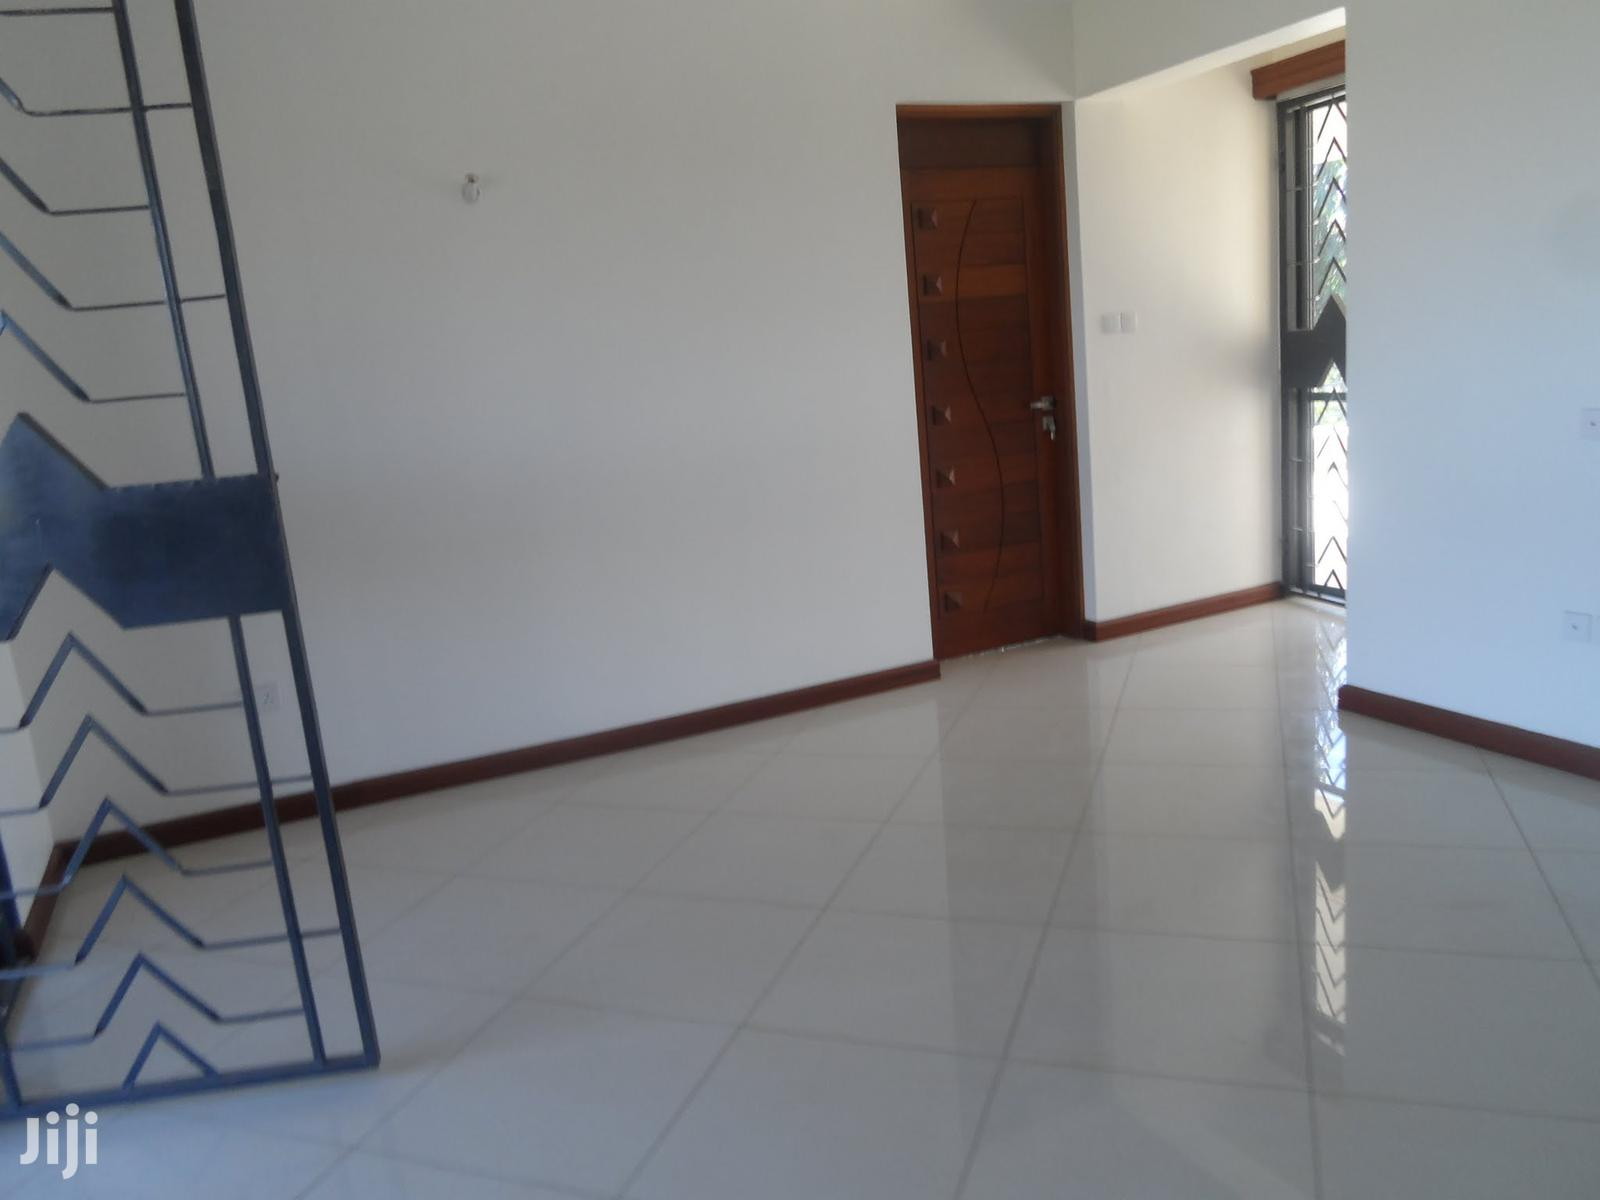 4br Townhouse Nyali/ Benford Homes | Houses & Apartments For Rent for sale in Mkomani, Mombasa, Kenya